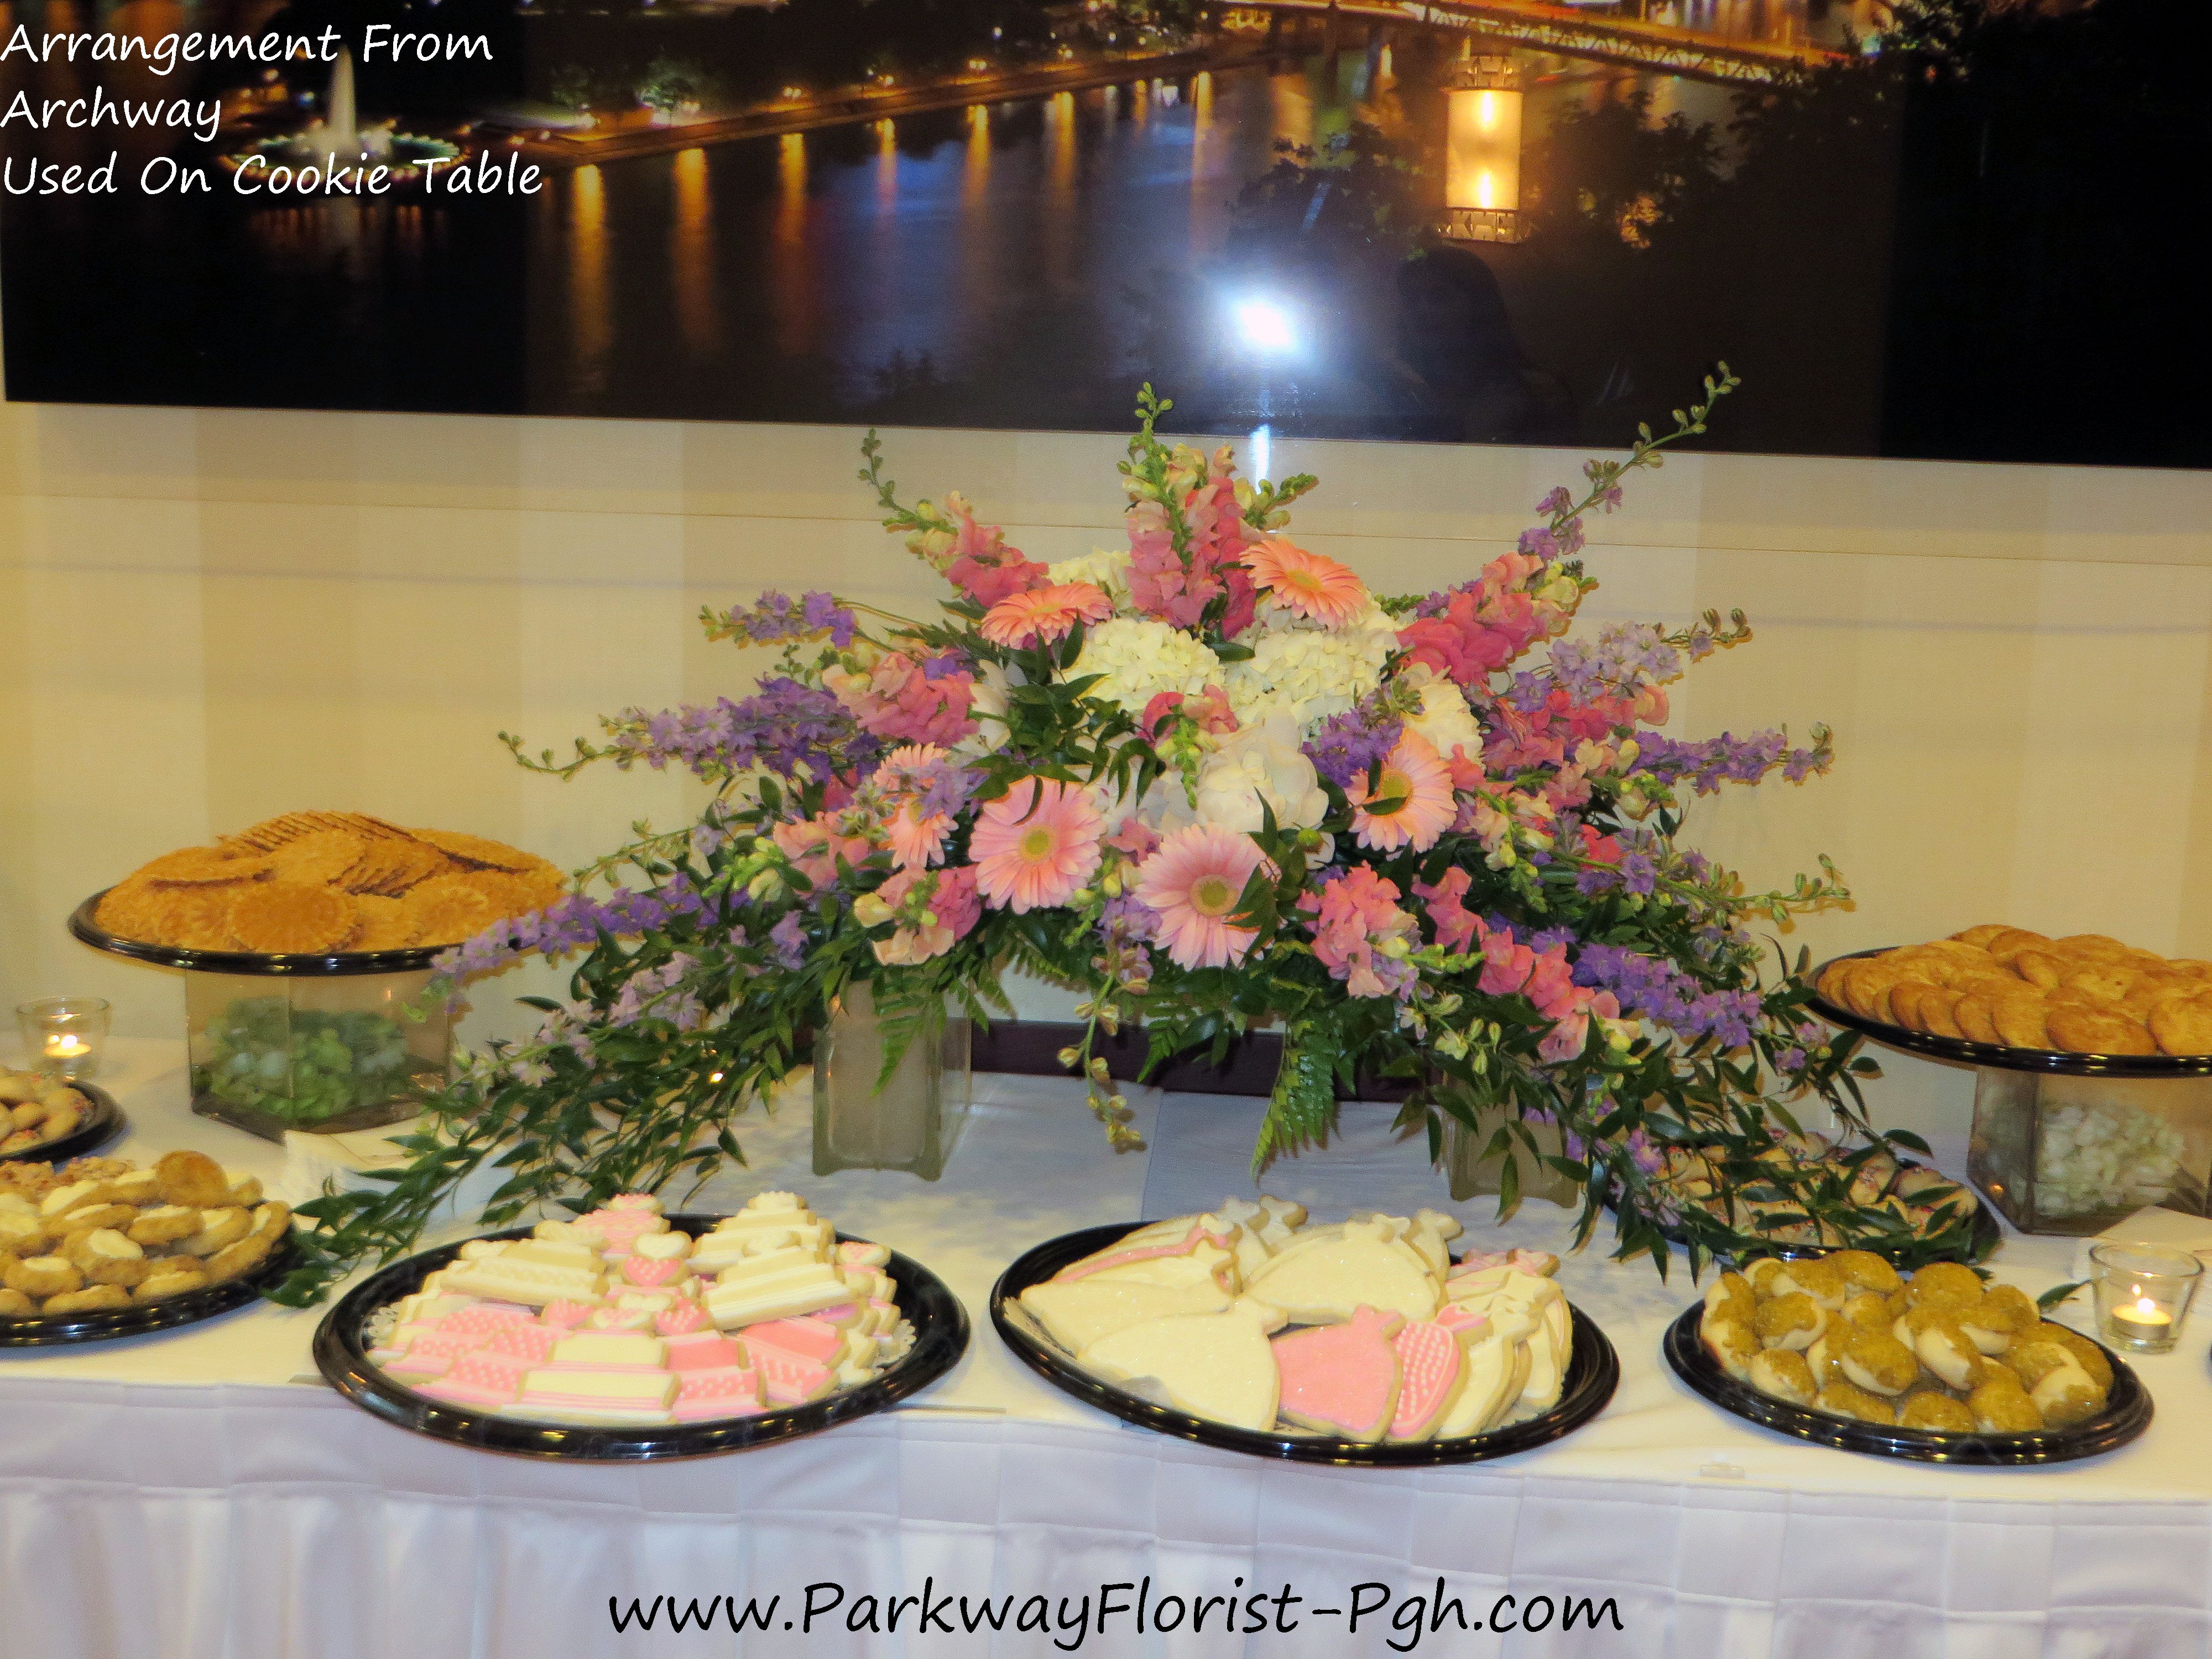 archway cookie table arrangement